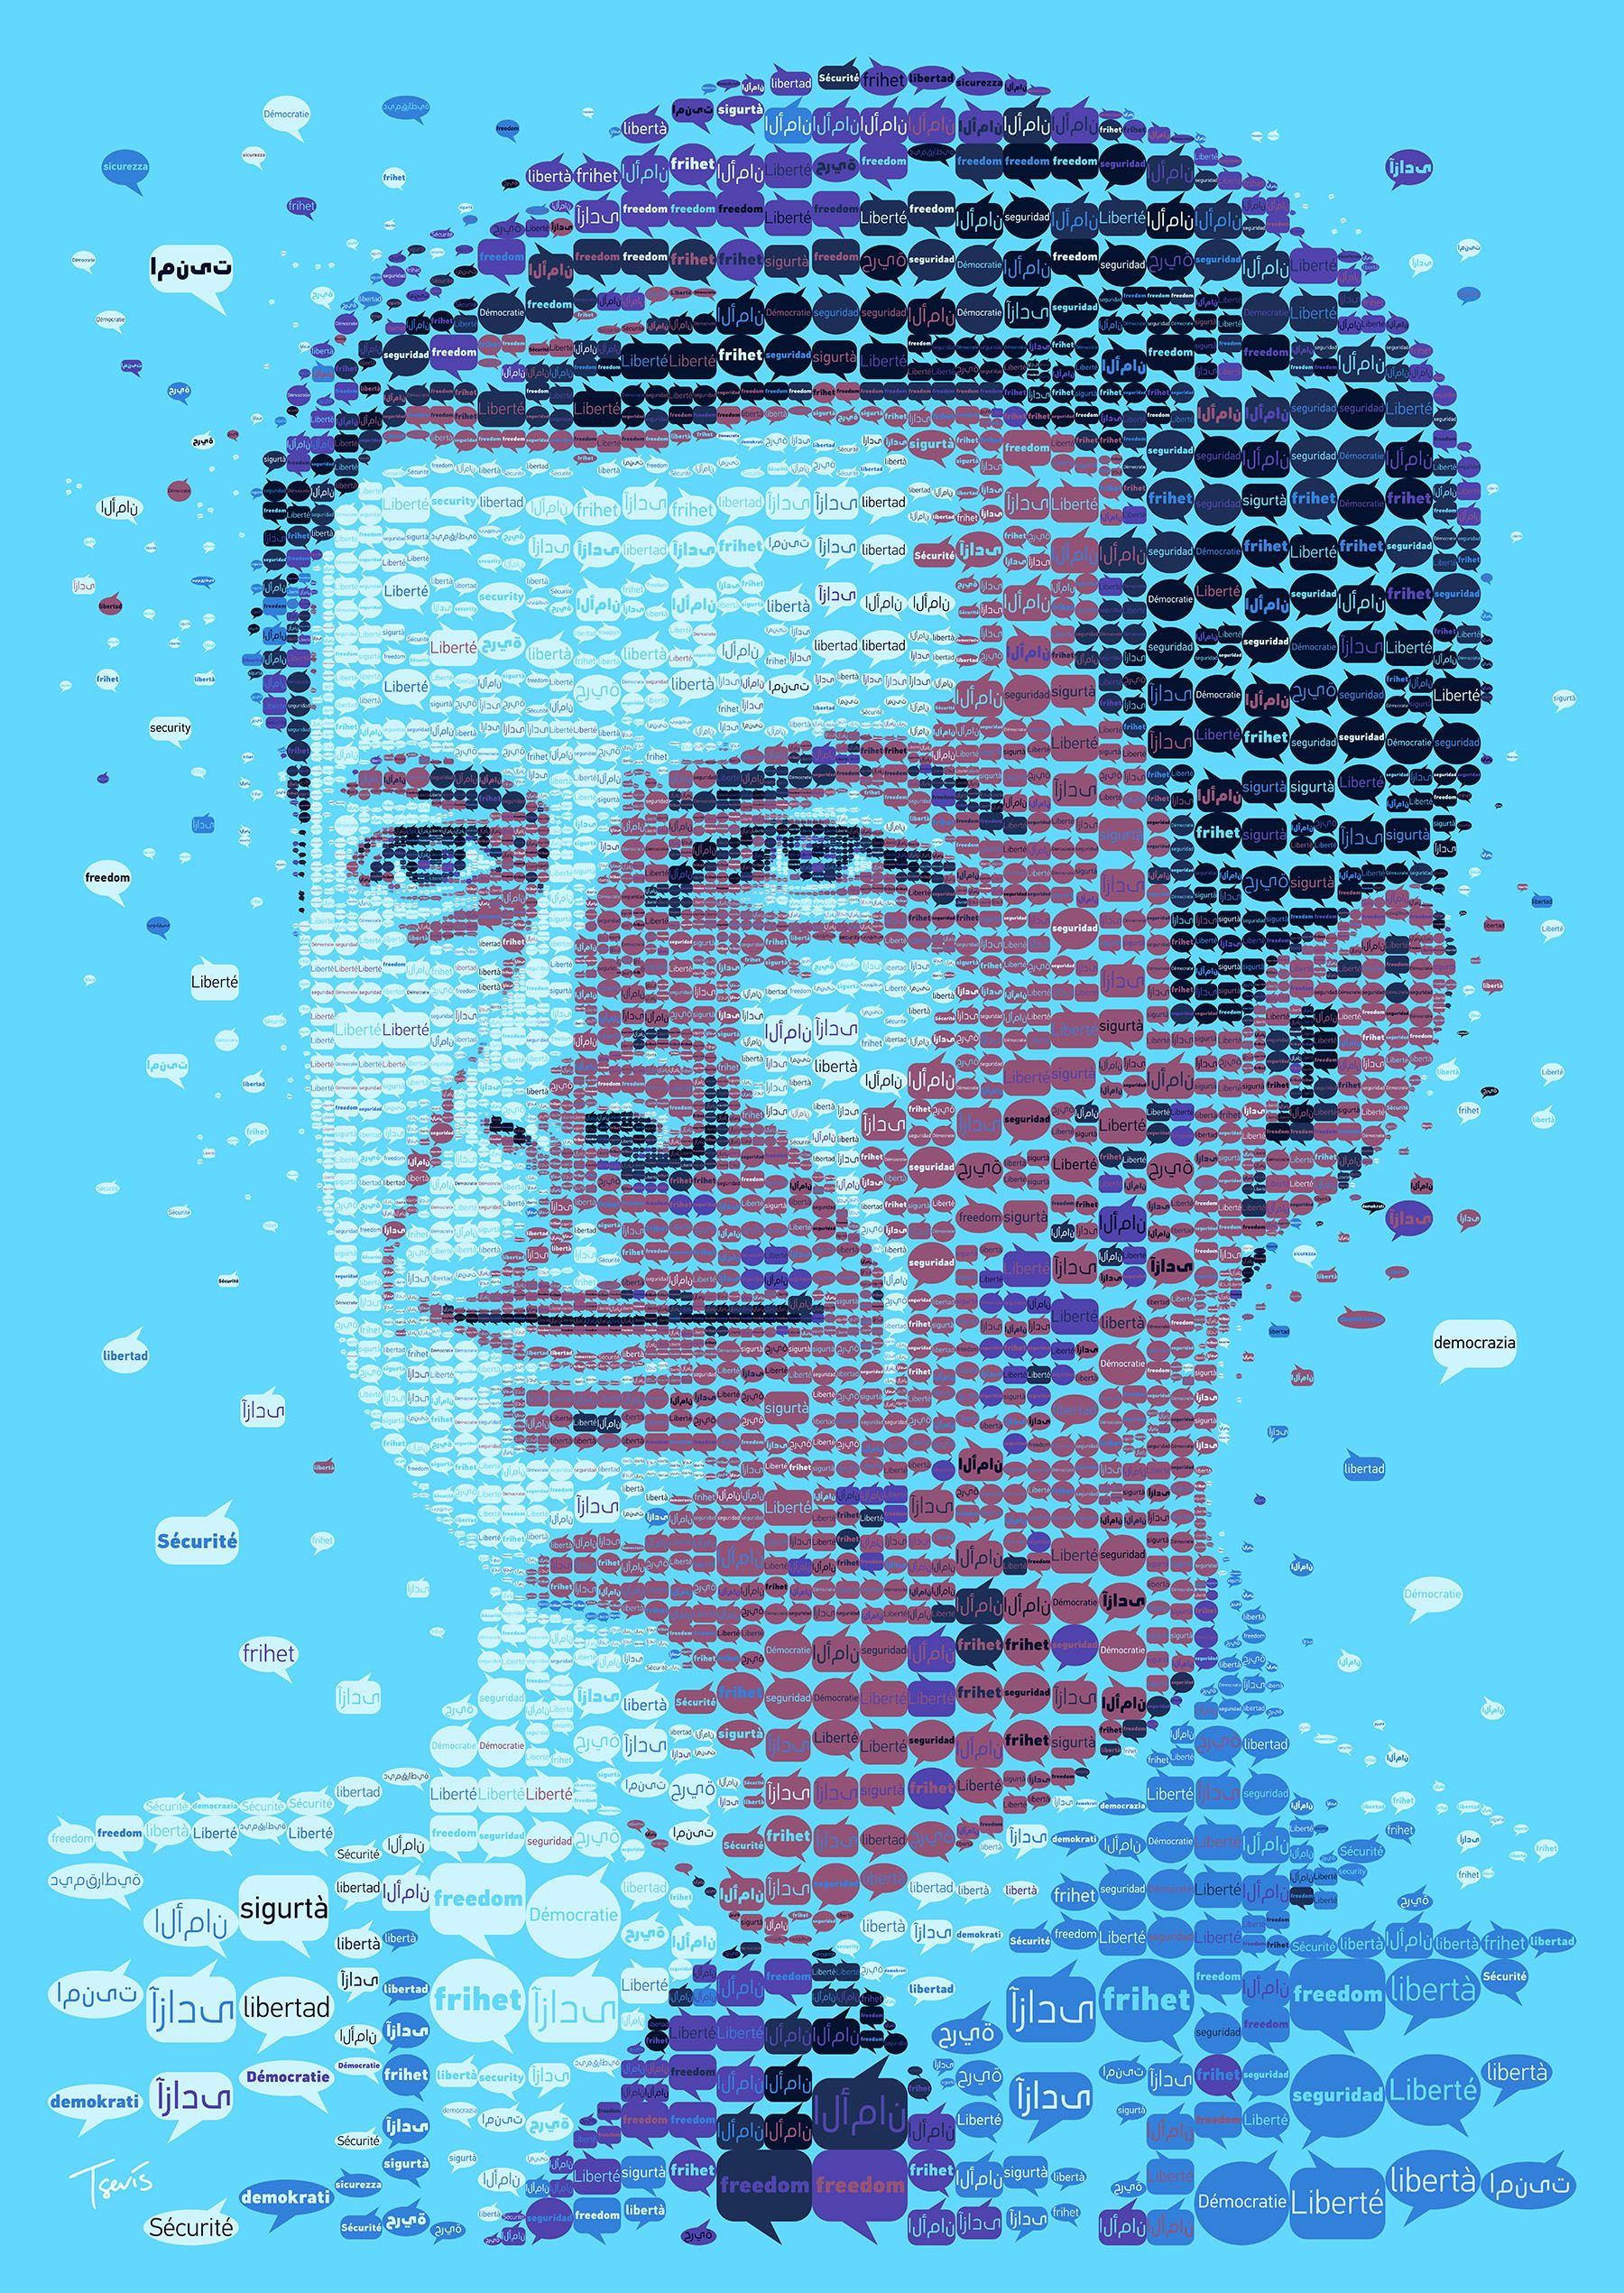 Freedom Democracy Security In 8 Languages Pete Buttigieg Favorite Bumper Sticker Moto Written In English And The 7 Political Artwork Mosaic Portrait Pete